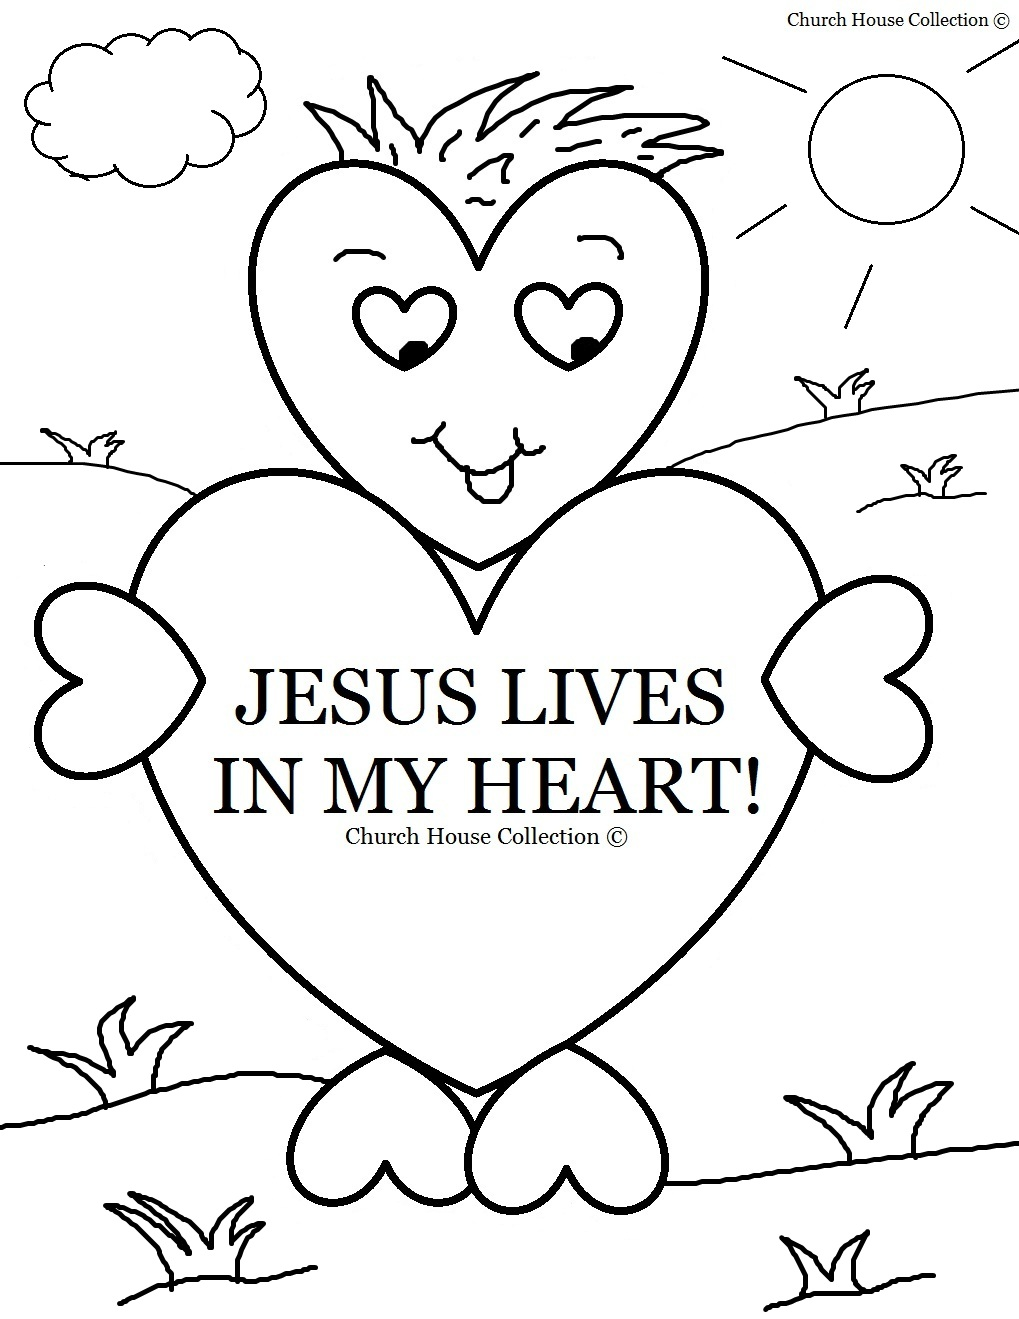 Preschool Children Coloring Pages at GetDrawings.com   Free for ...